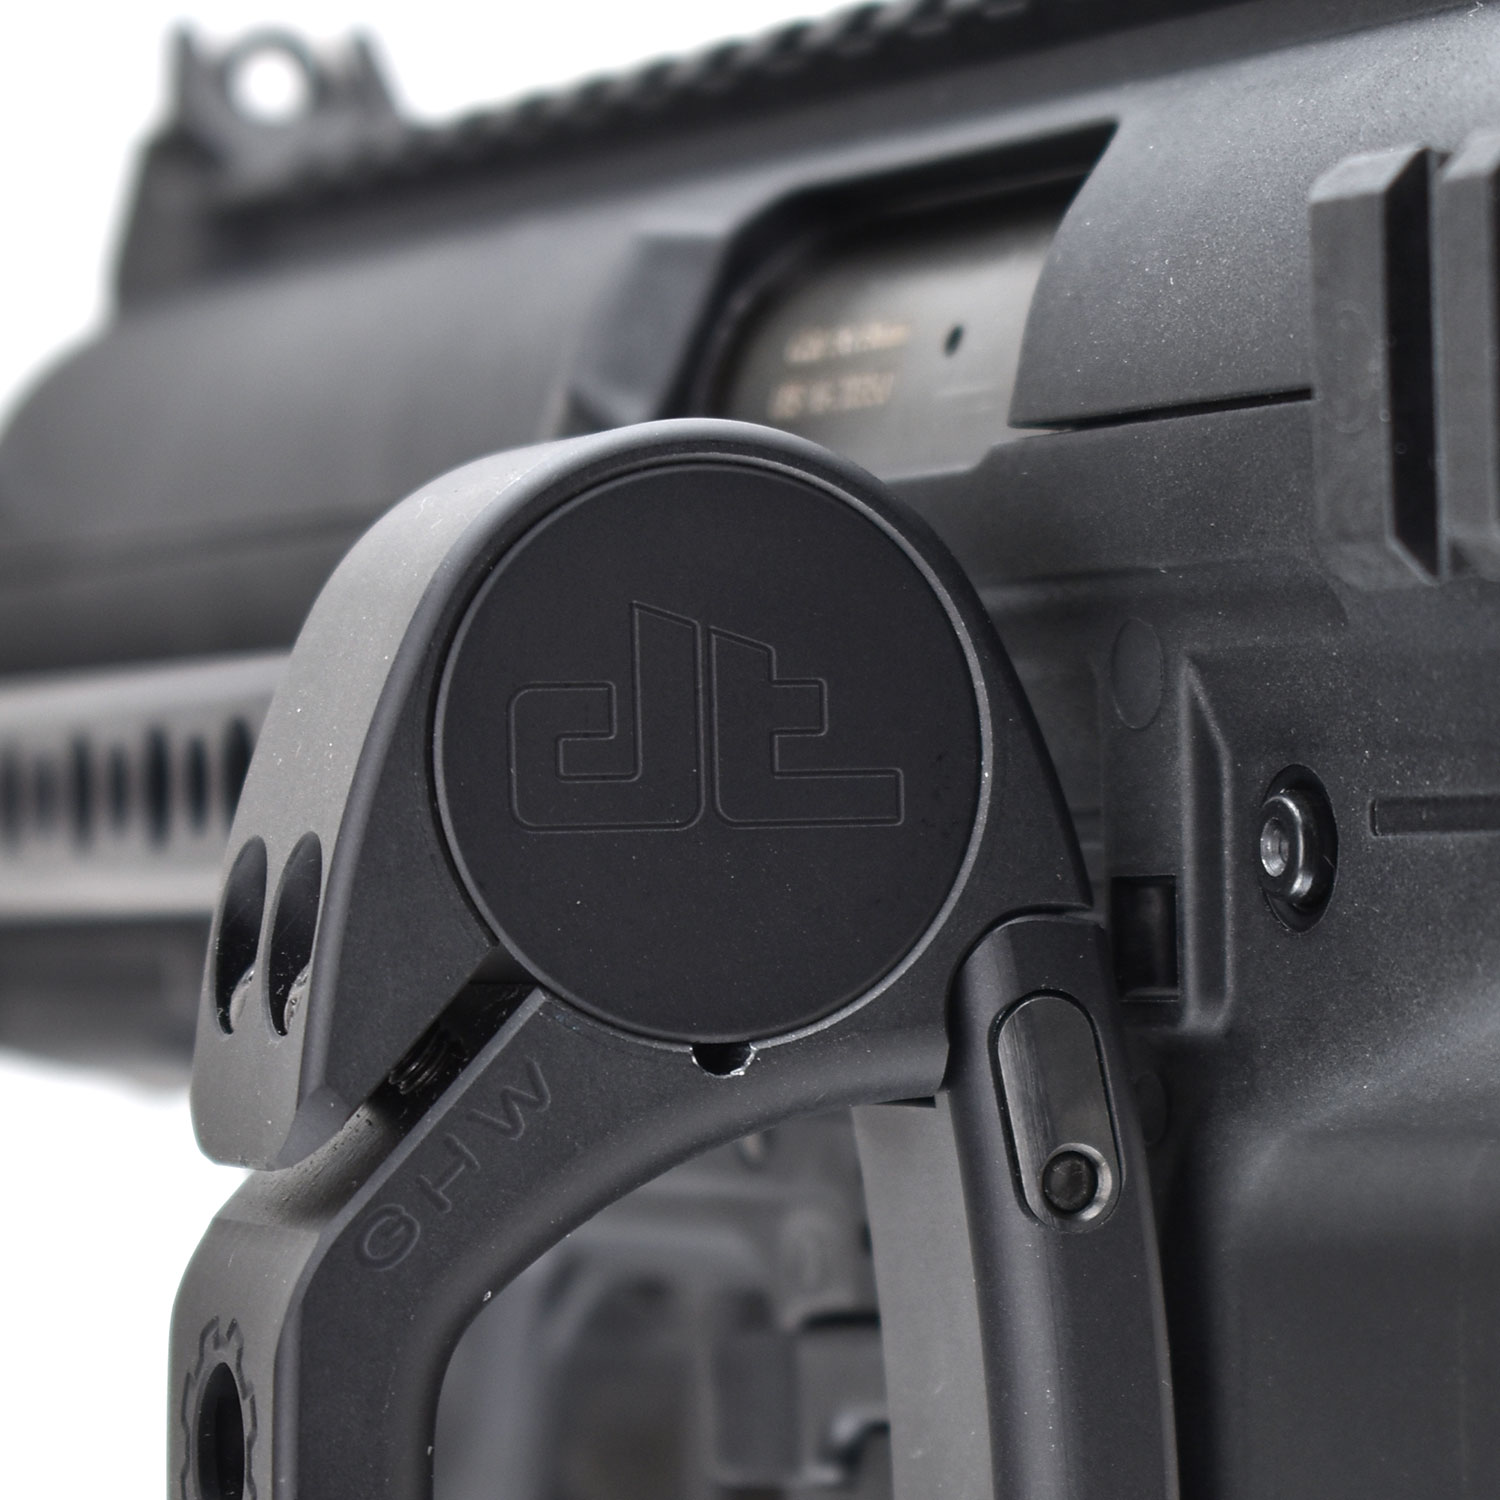 DT Folding Brace Adapter for B&T Firearms